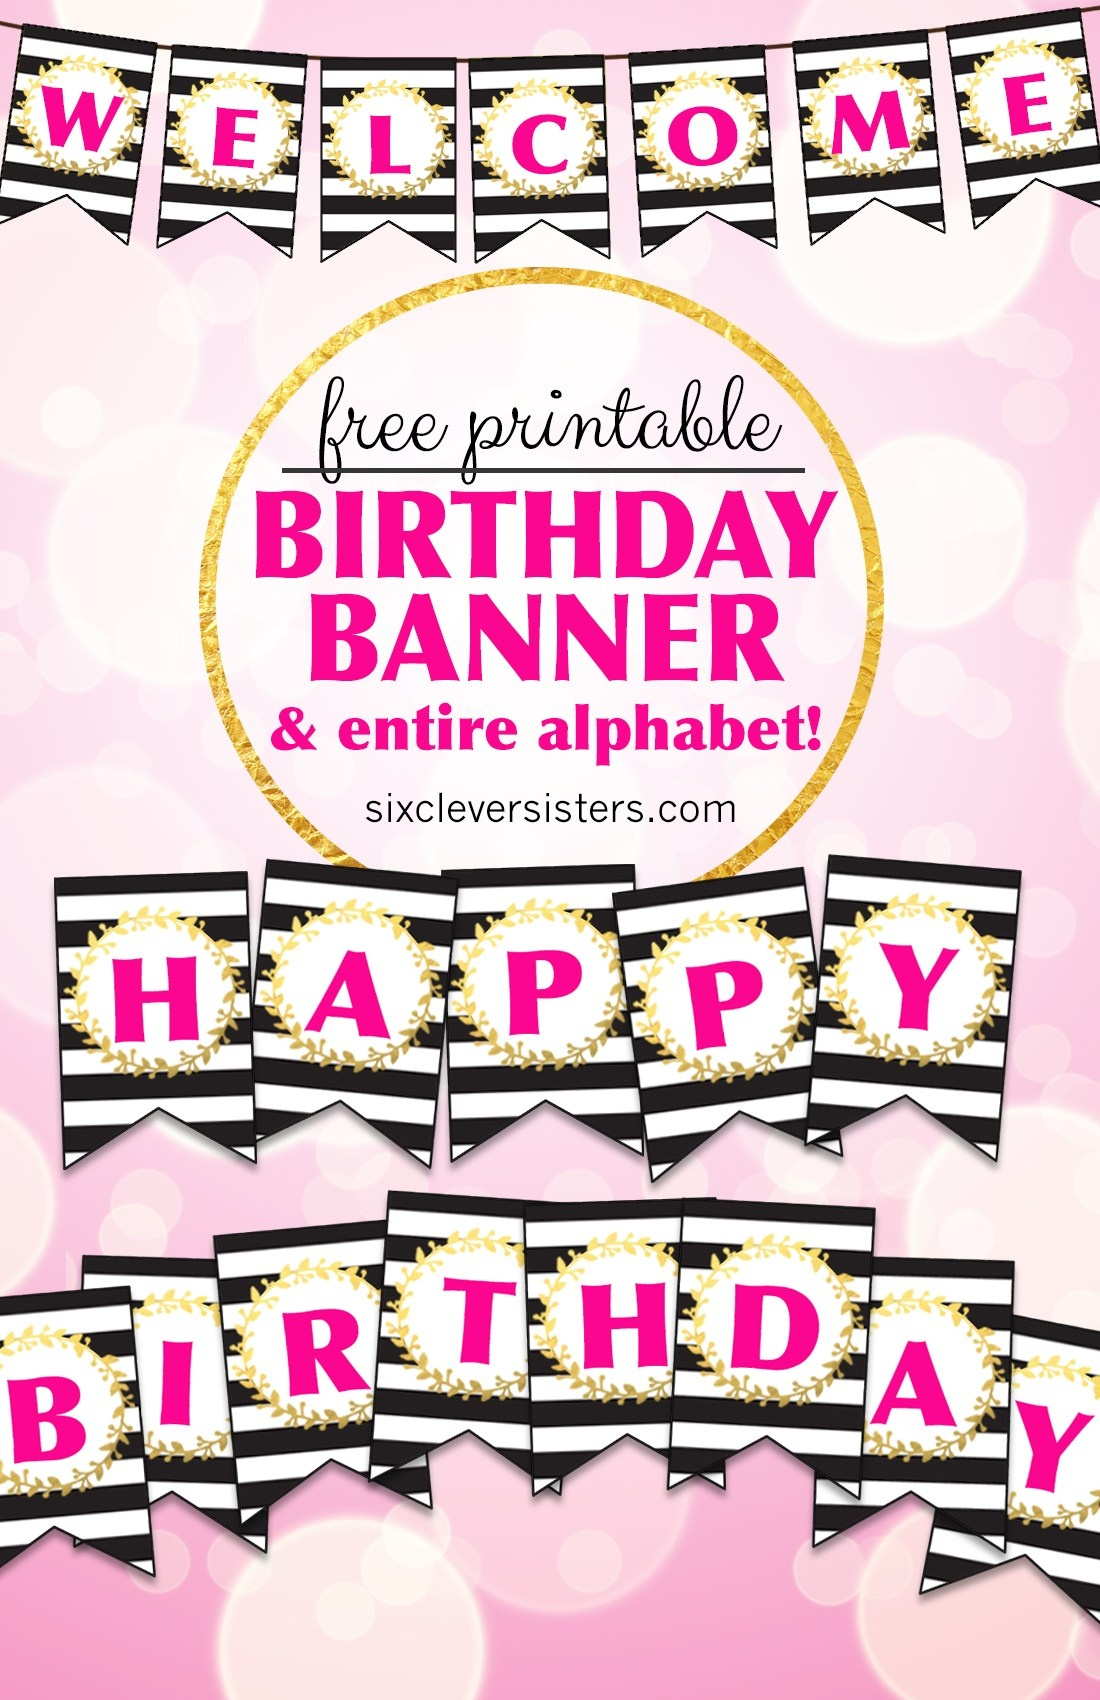 Free Printable Happy Birthday Banner And Alphabet - Six Clever Sisters - Free Printable God Bless Banner